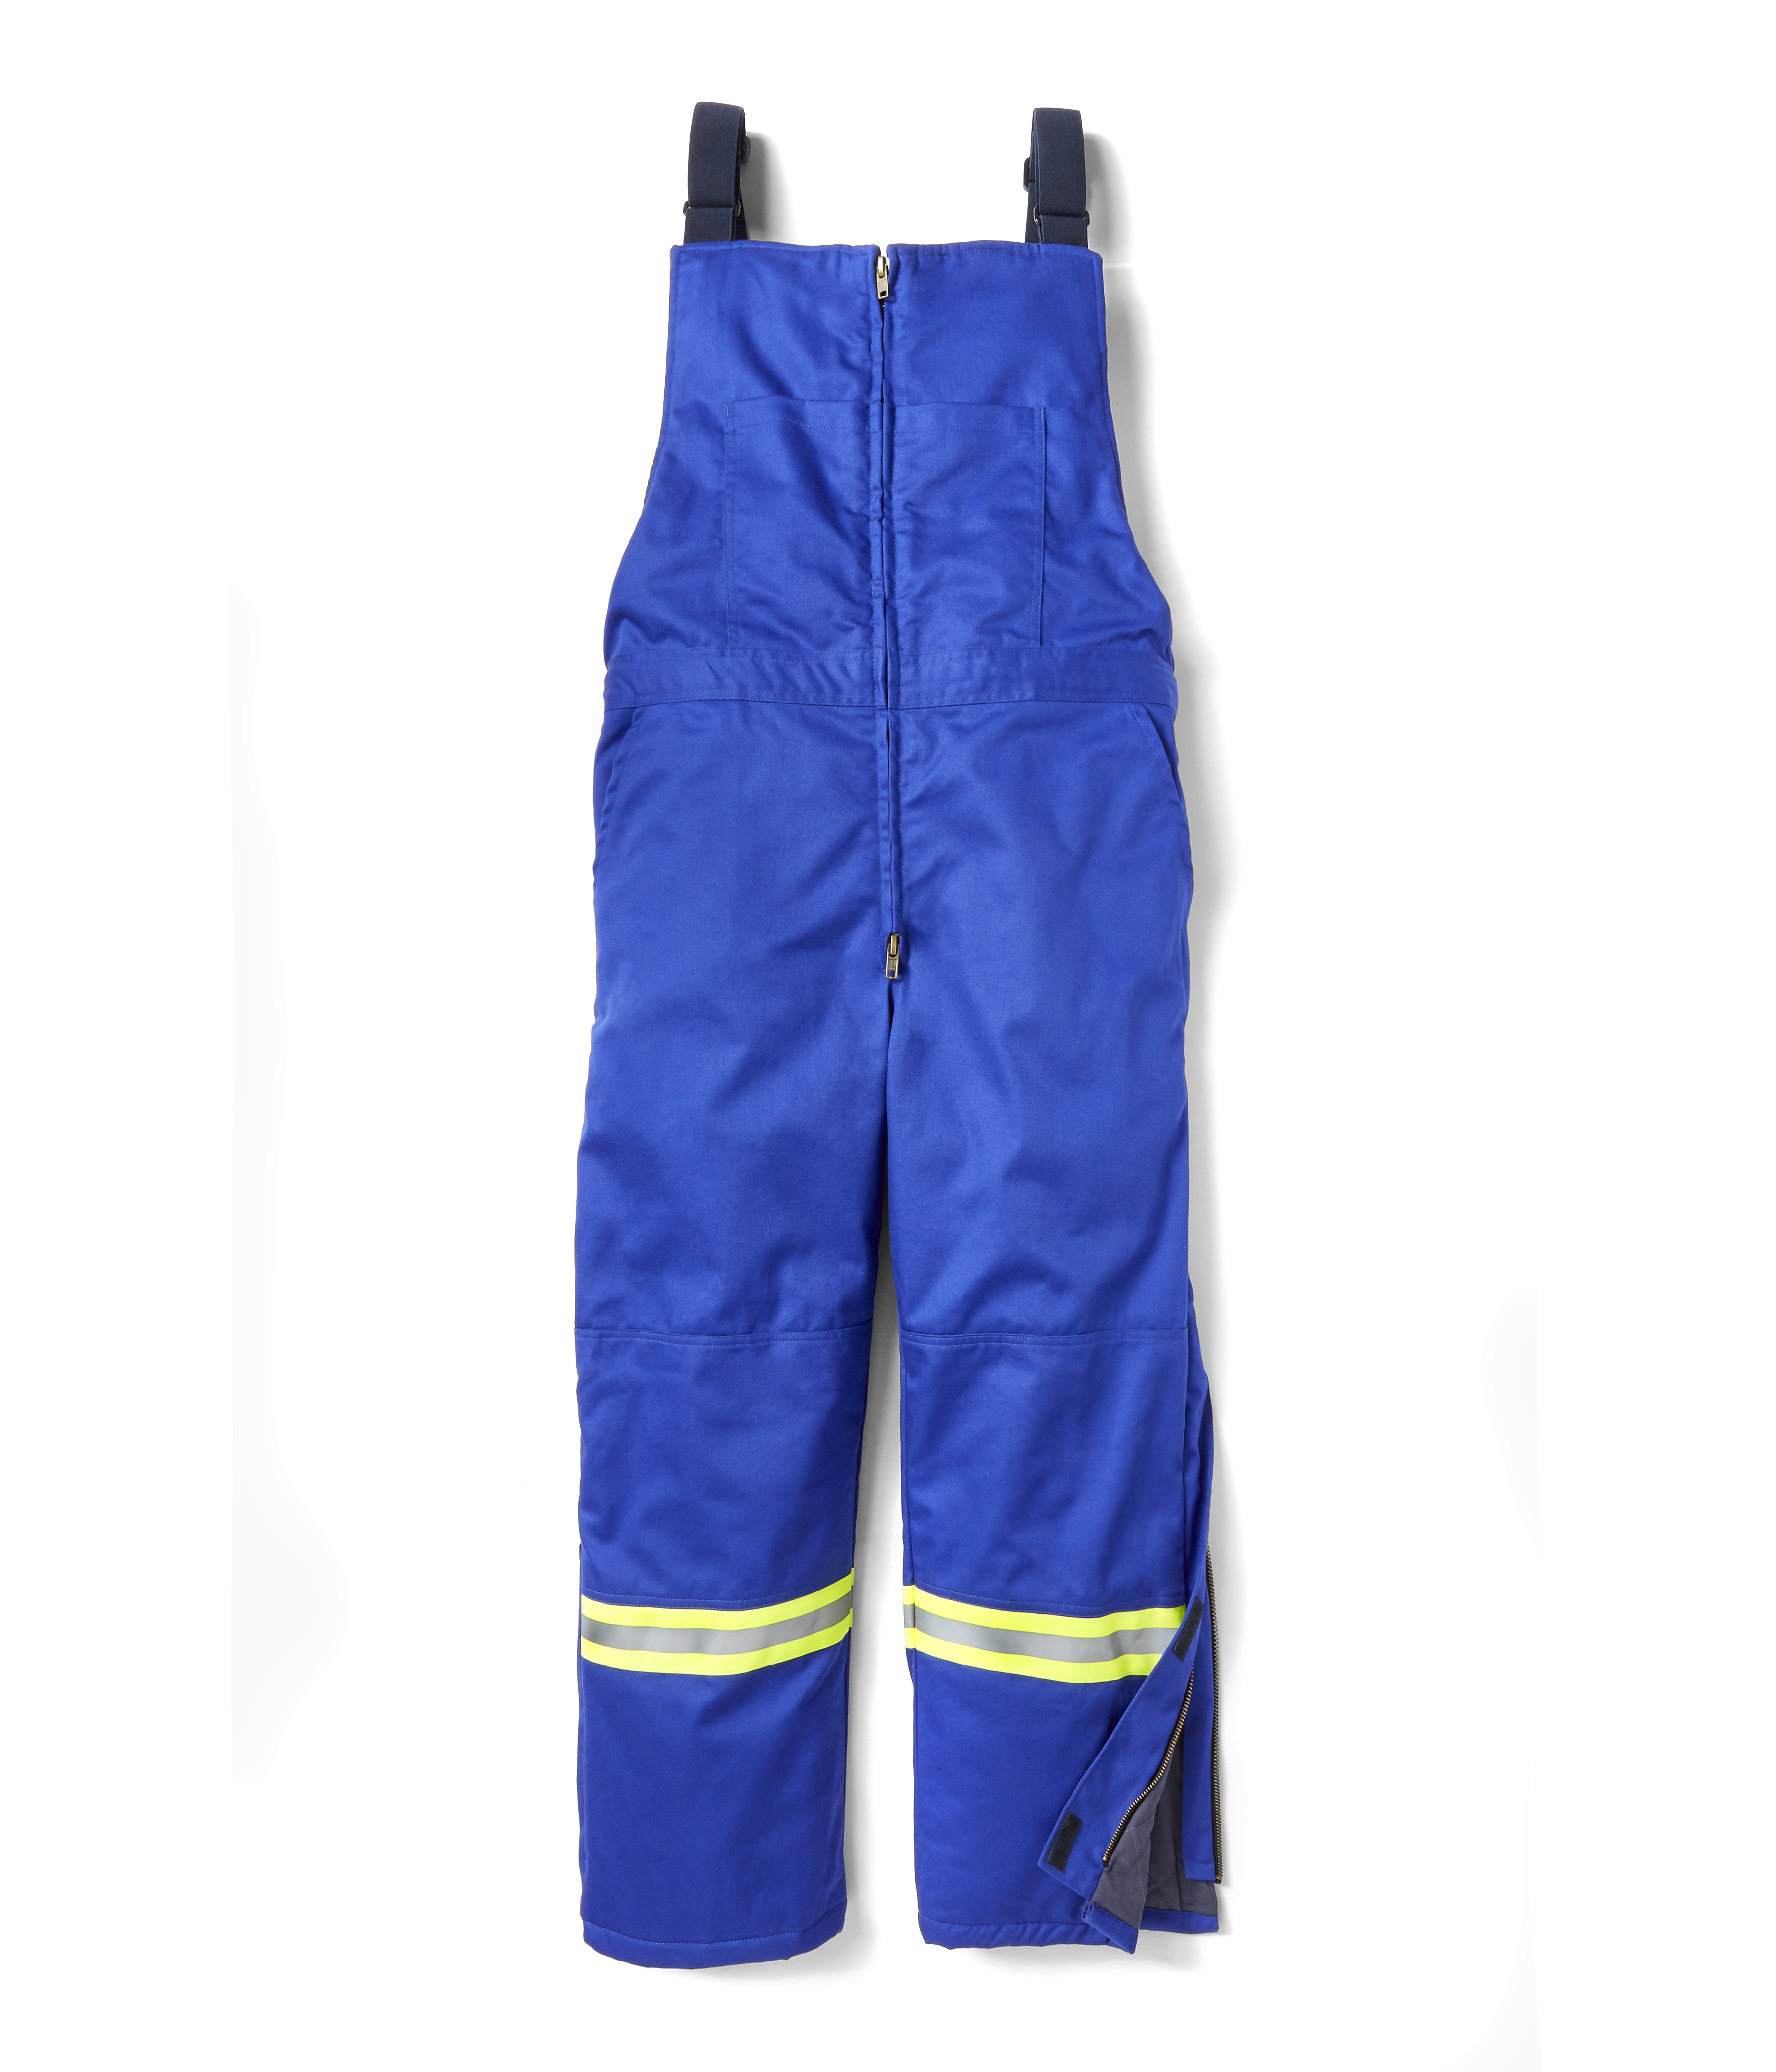 FR UltraSoft Insulated Bib Overall with Reflective Trim